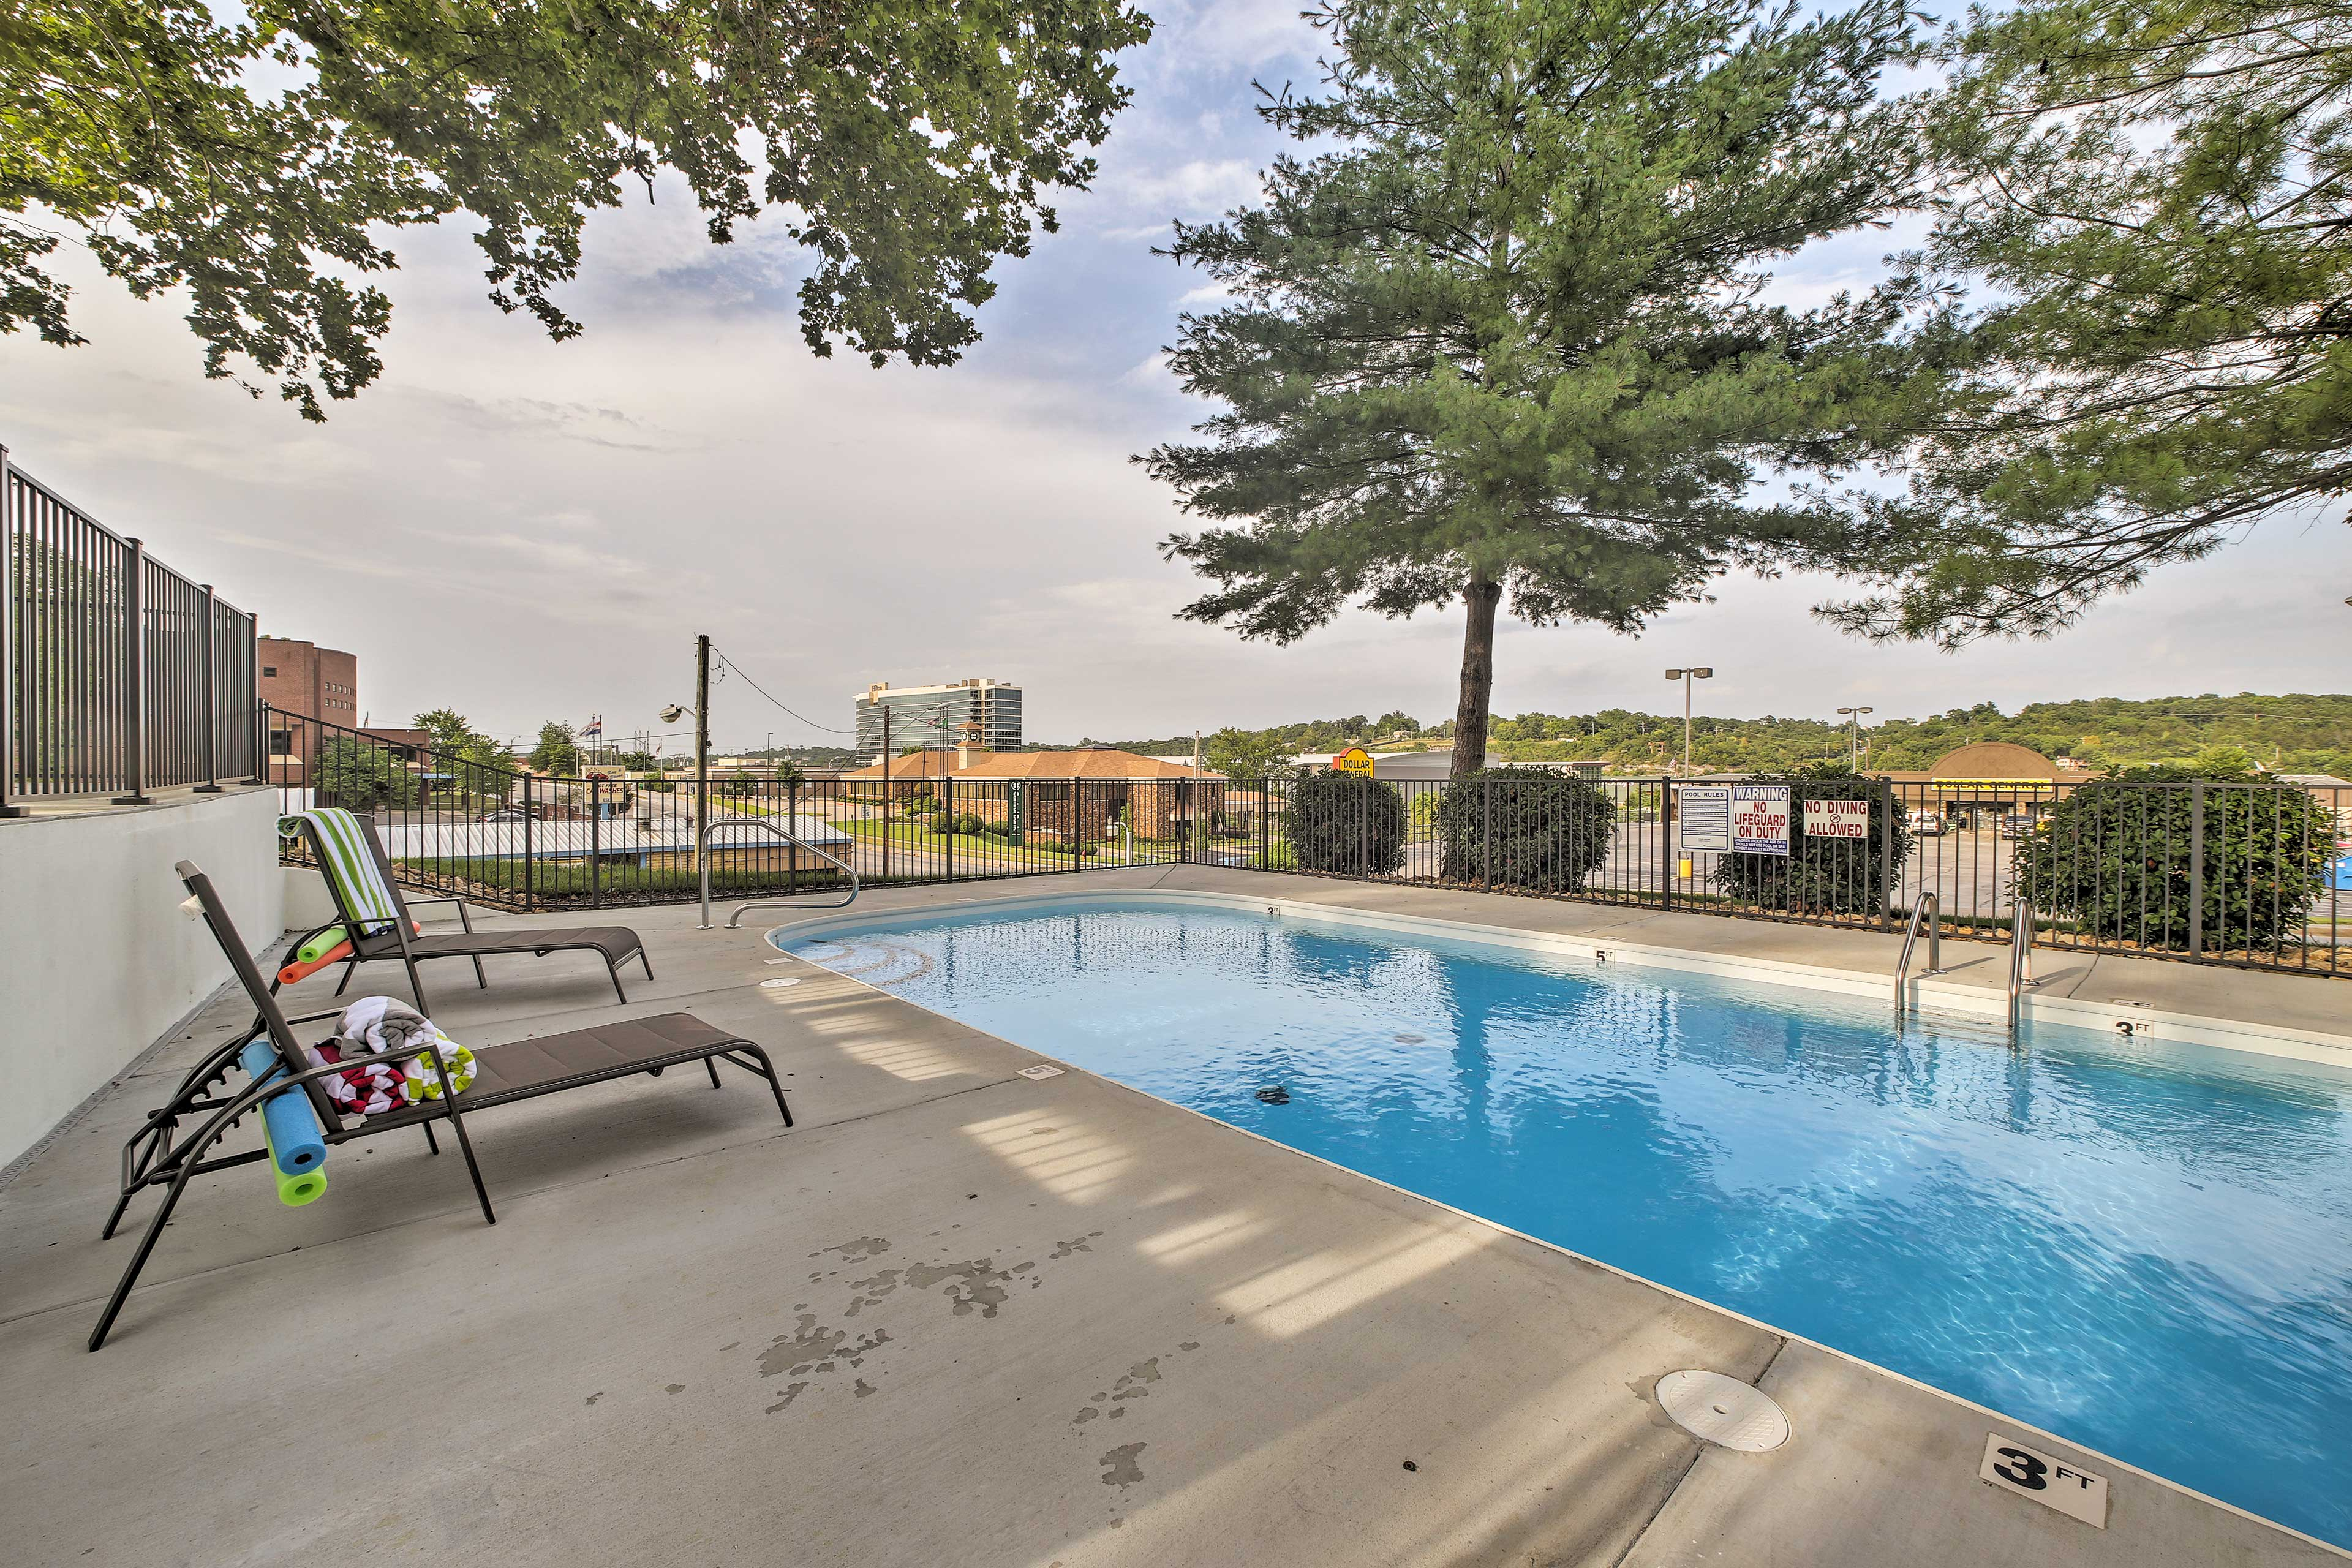 The pool deck provides a lovely view!